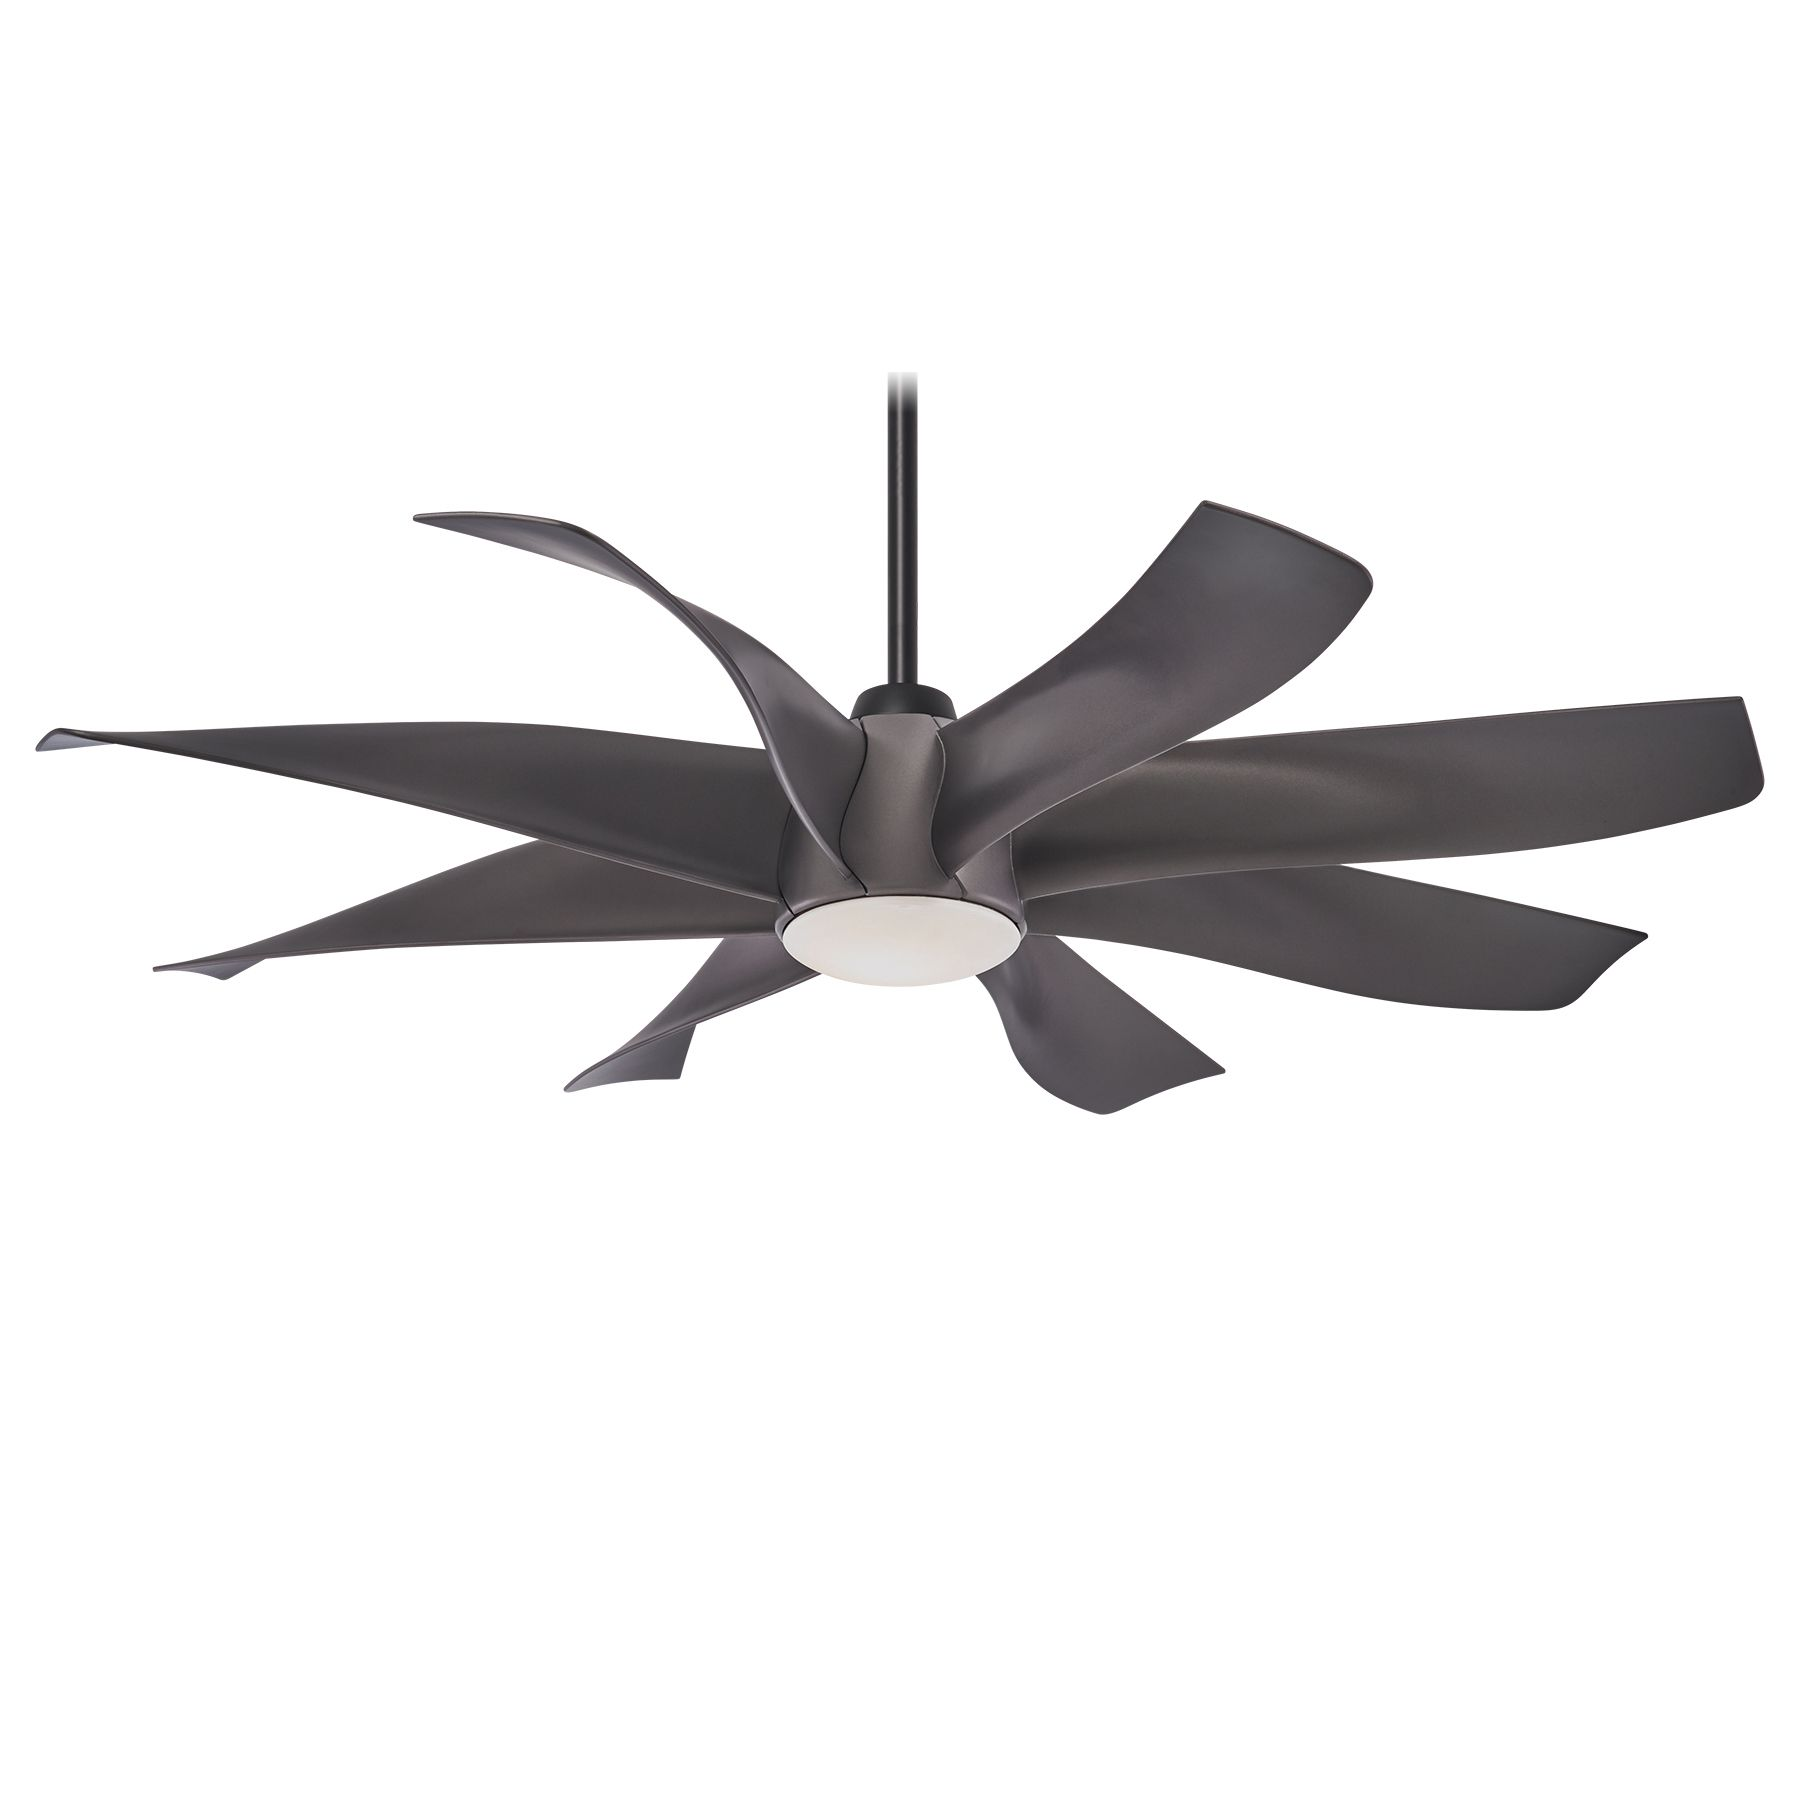 Dream Star Ceiling Fan With Light Comes With A Graphite Steel Motor With Matching Blades A White Motor With Matc Ceiling Fan Ceiling Fan With Remote Fan Light